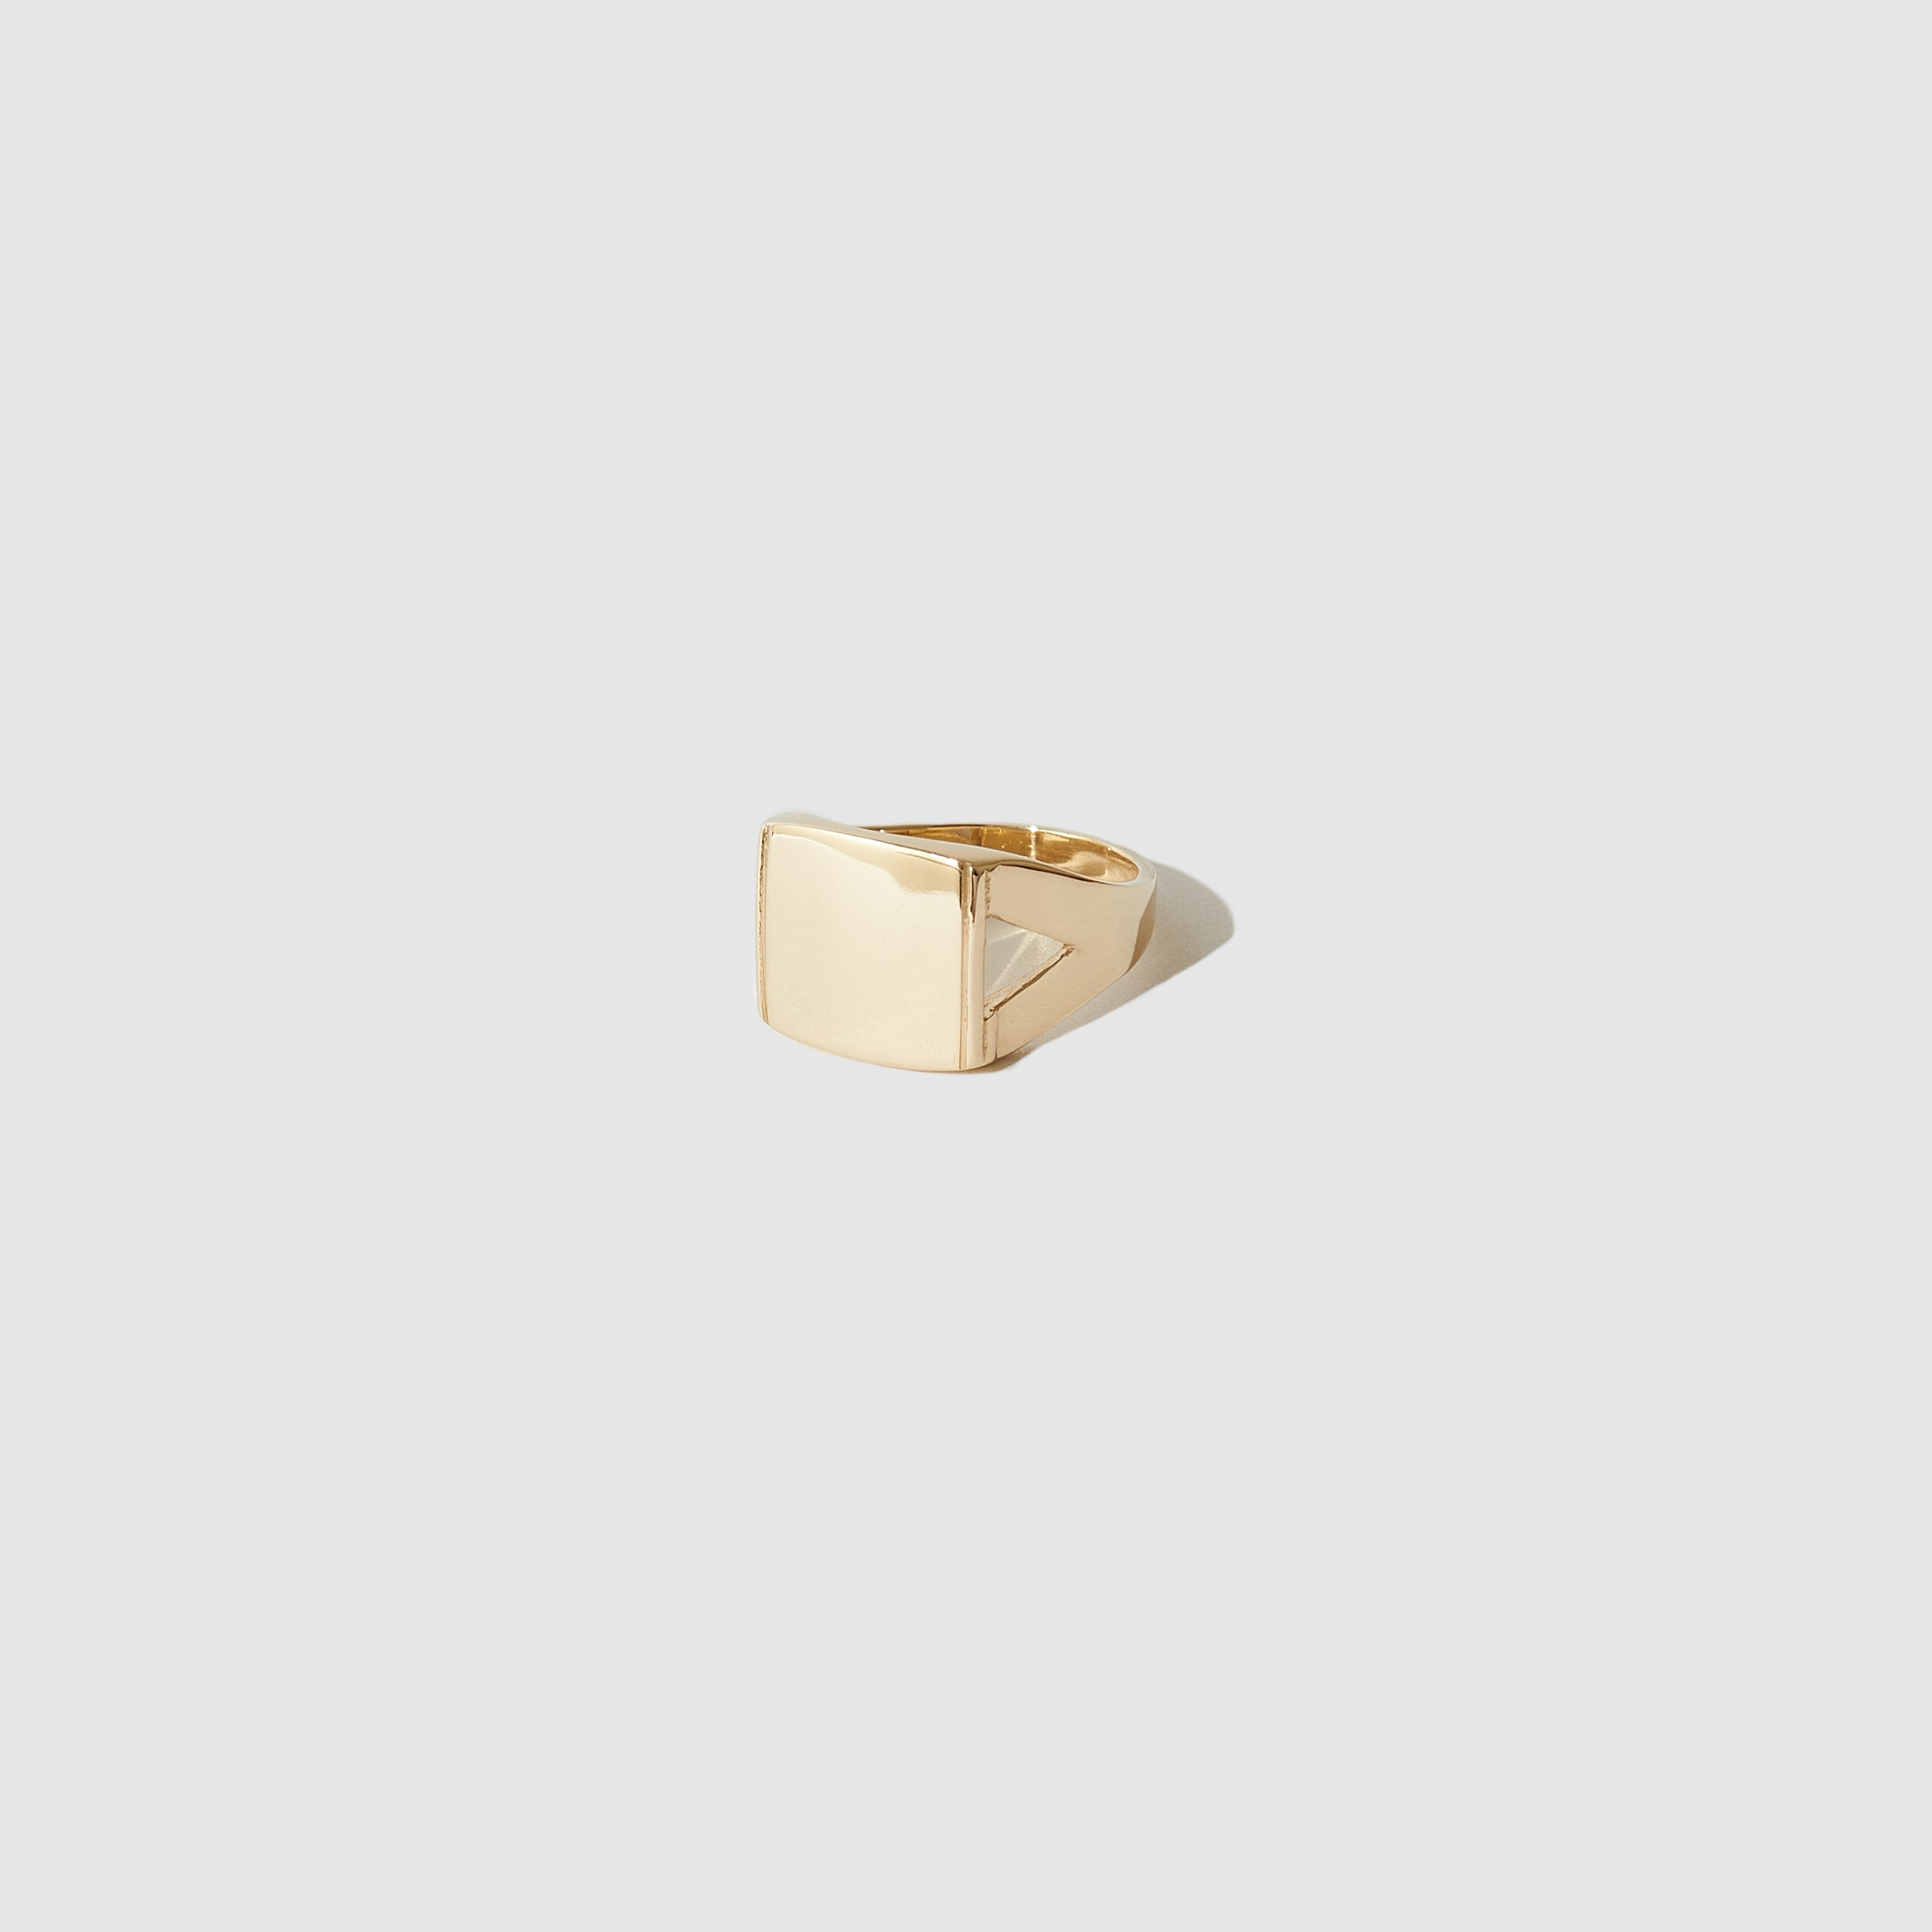 Ornament Signet ring ~ 9ct yellow gold